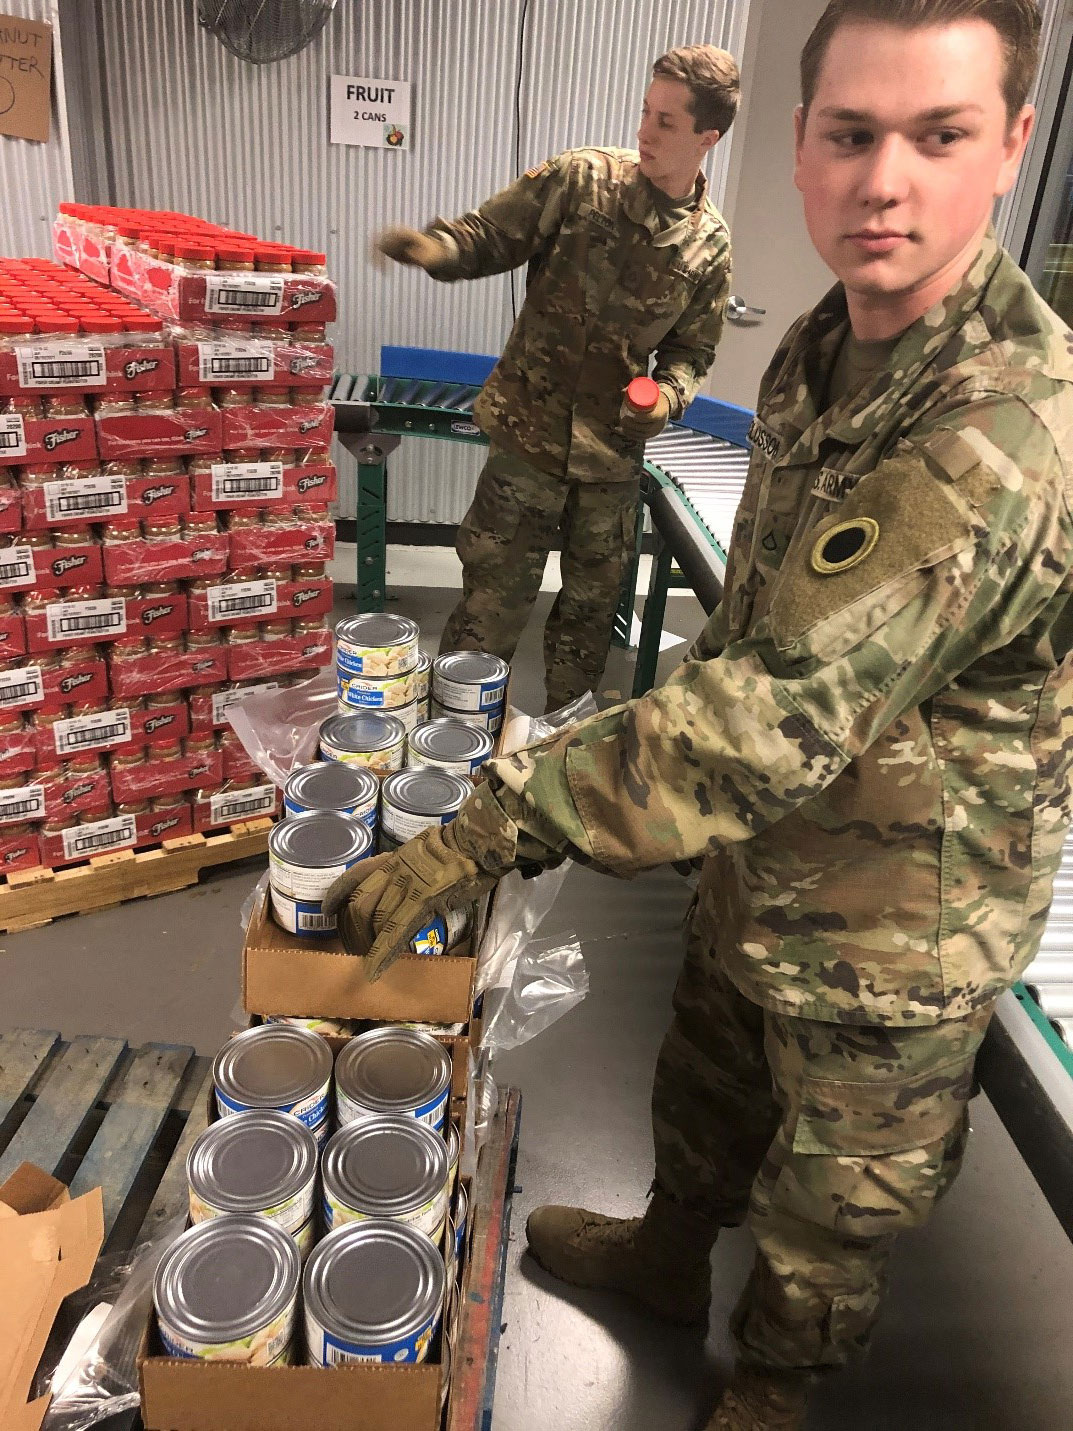 Soldier unloads canned chicken from boxes.